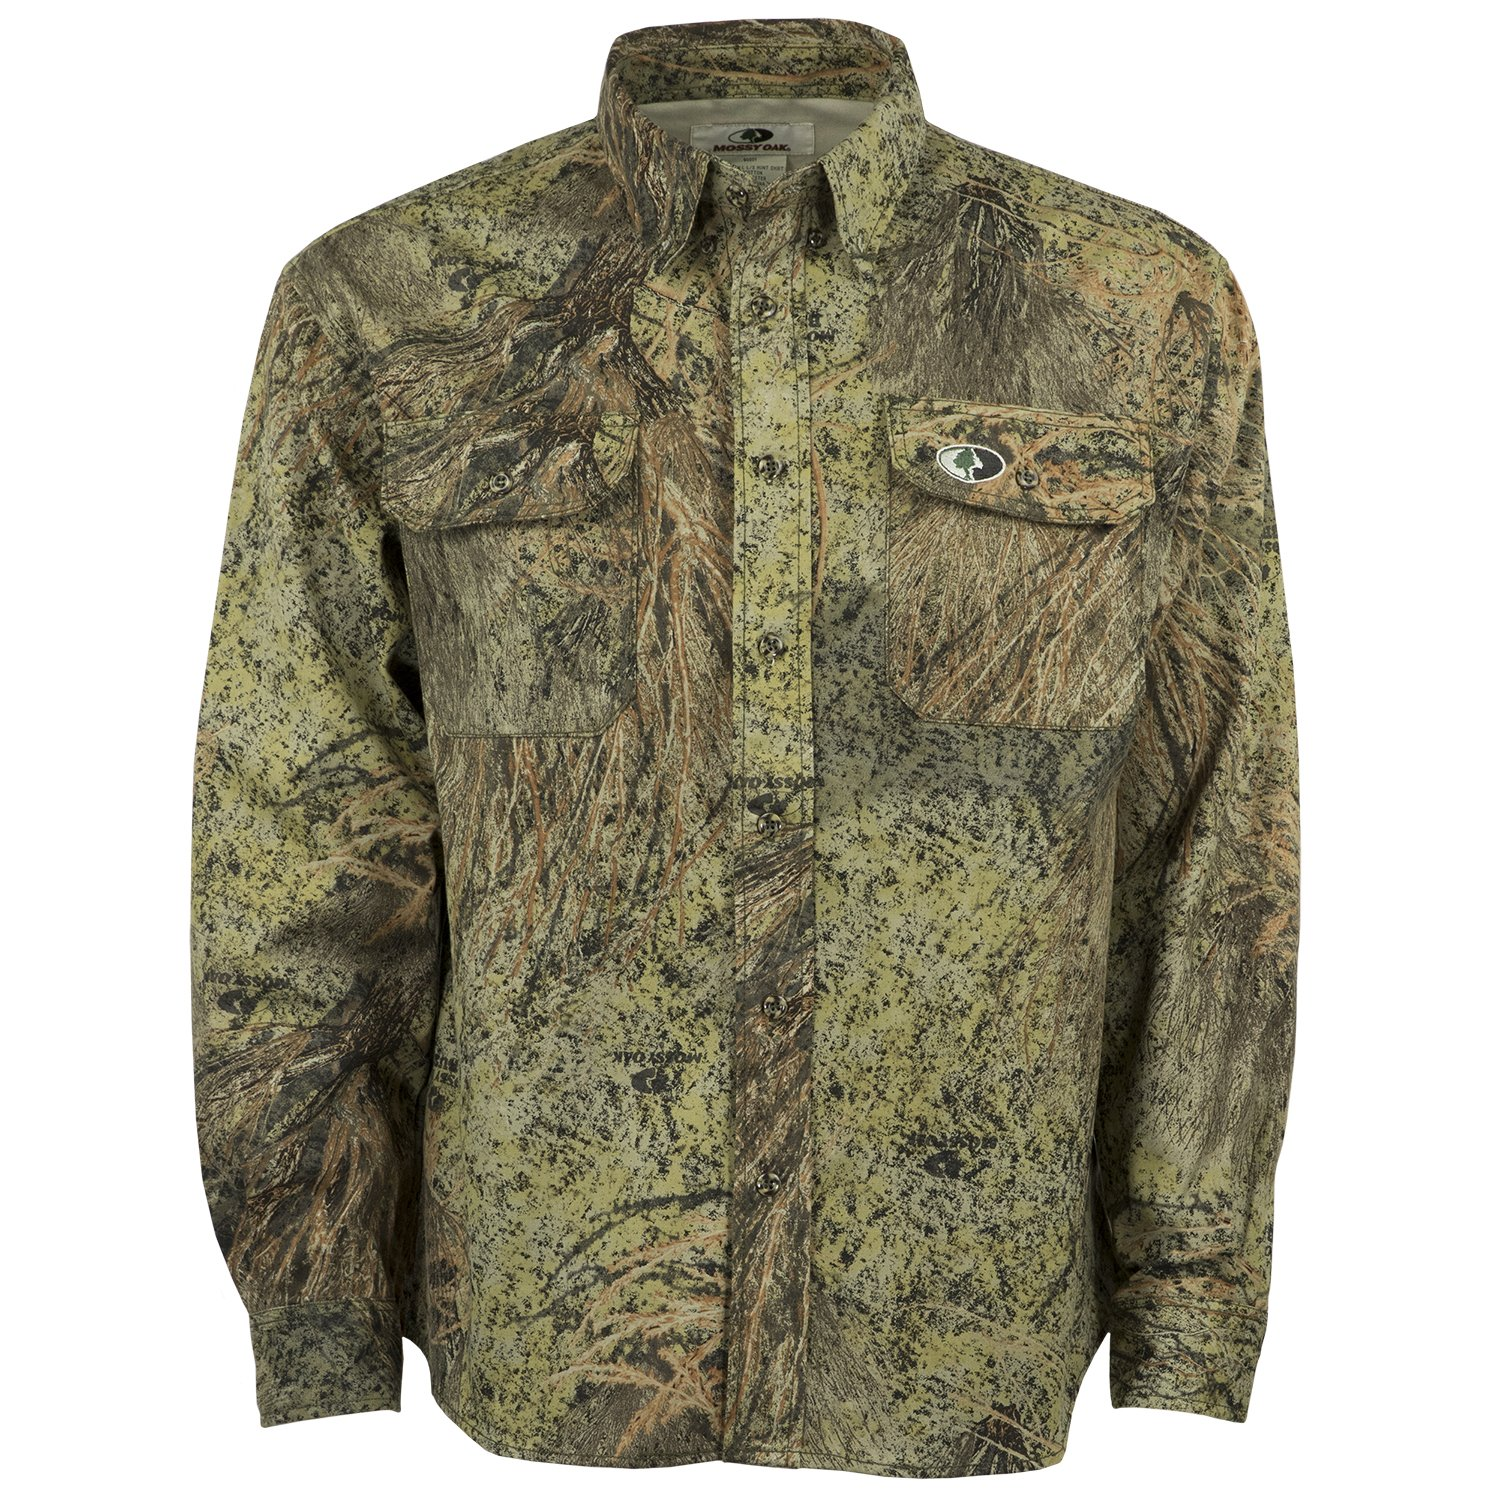 Mossy Oak Men's Cotton Mill Hunt Shirt by Mossy Oak